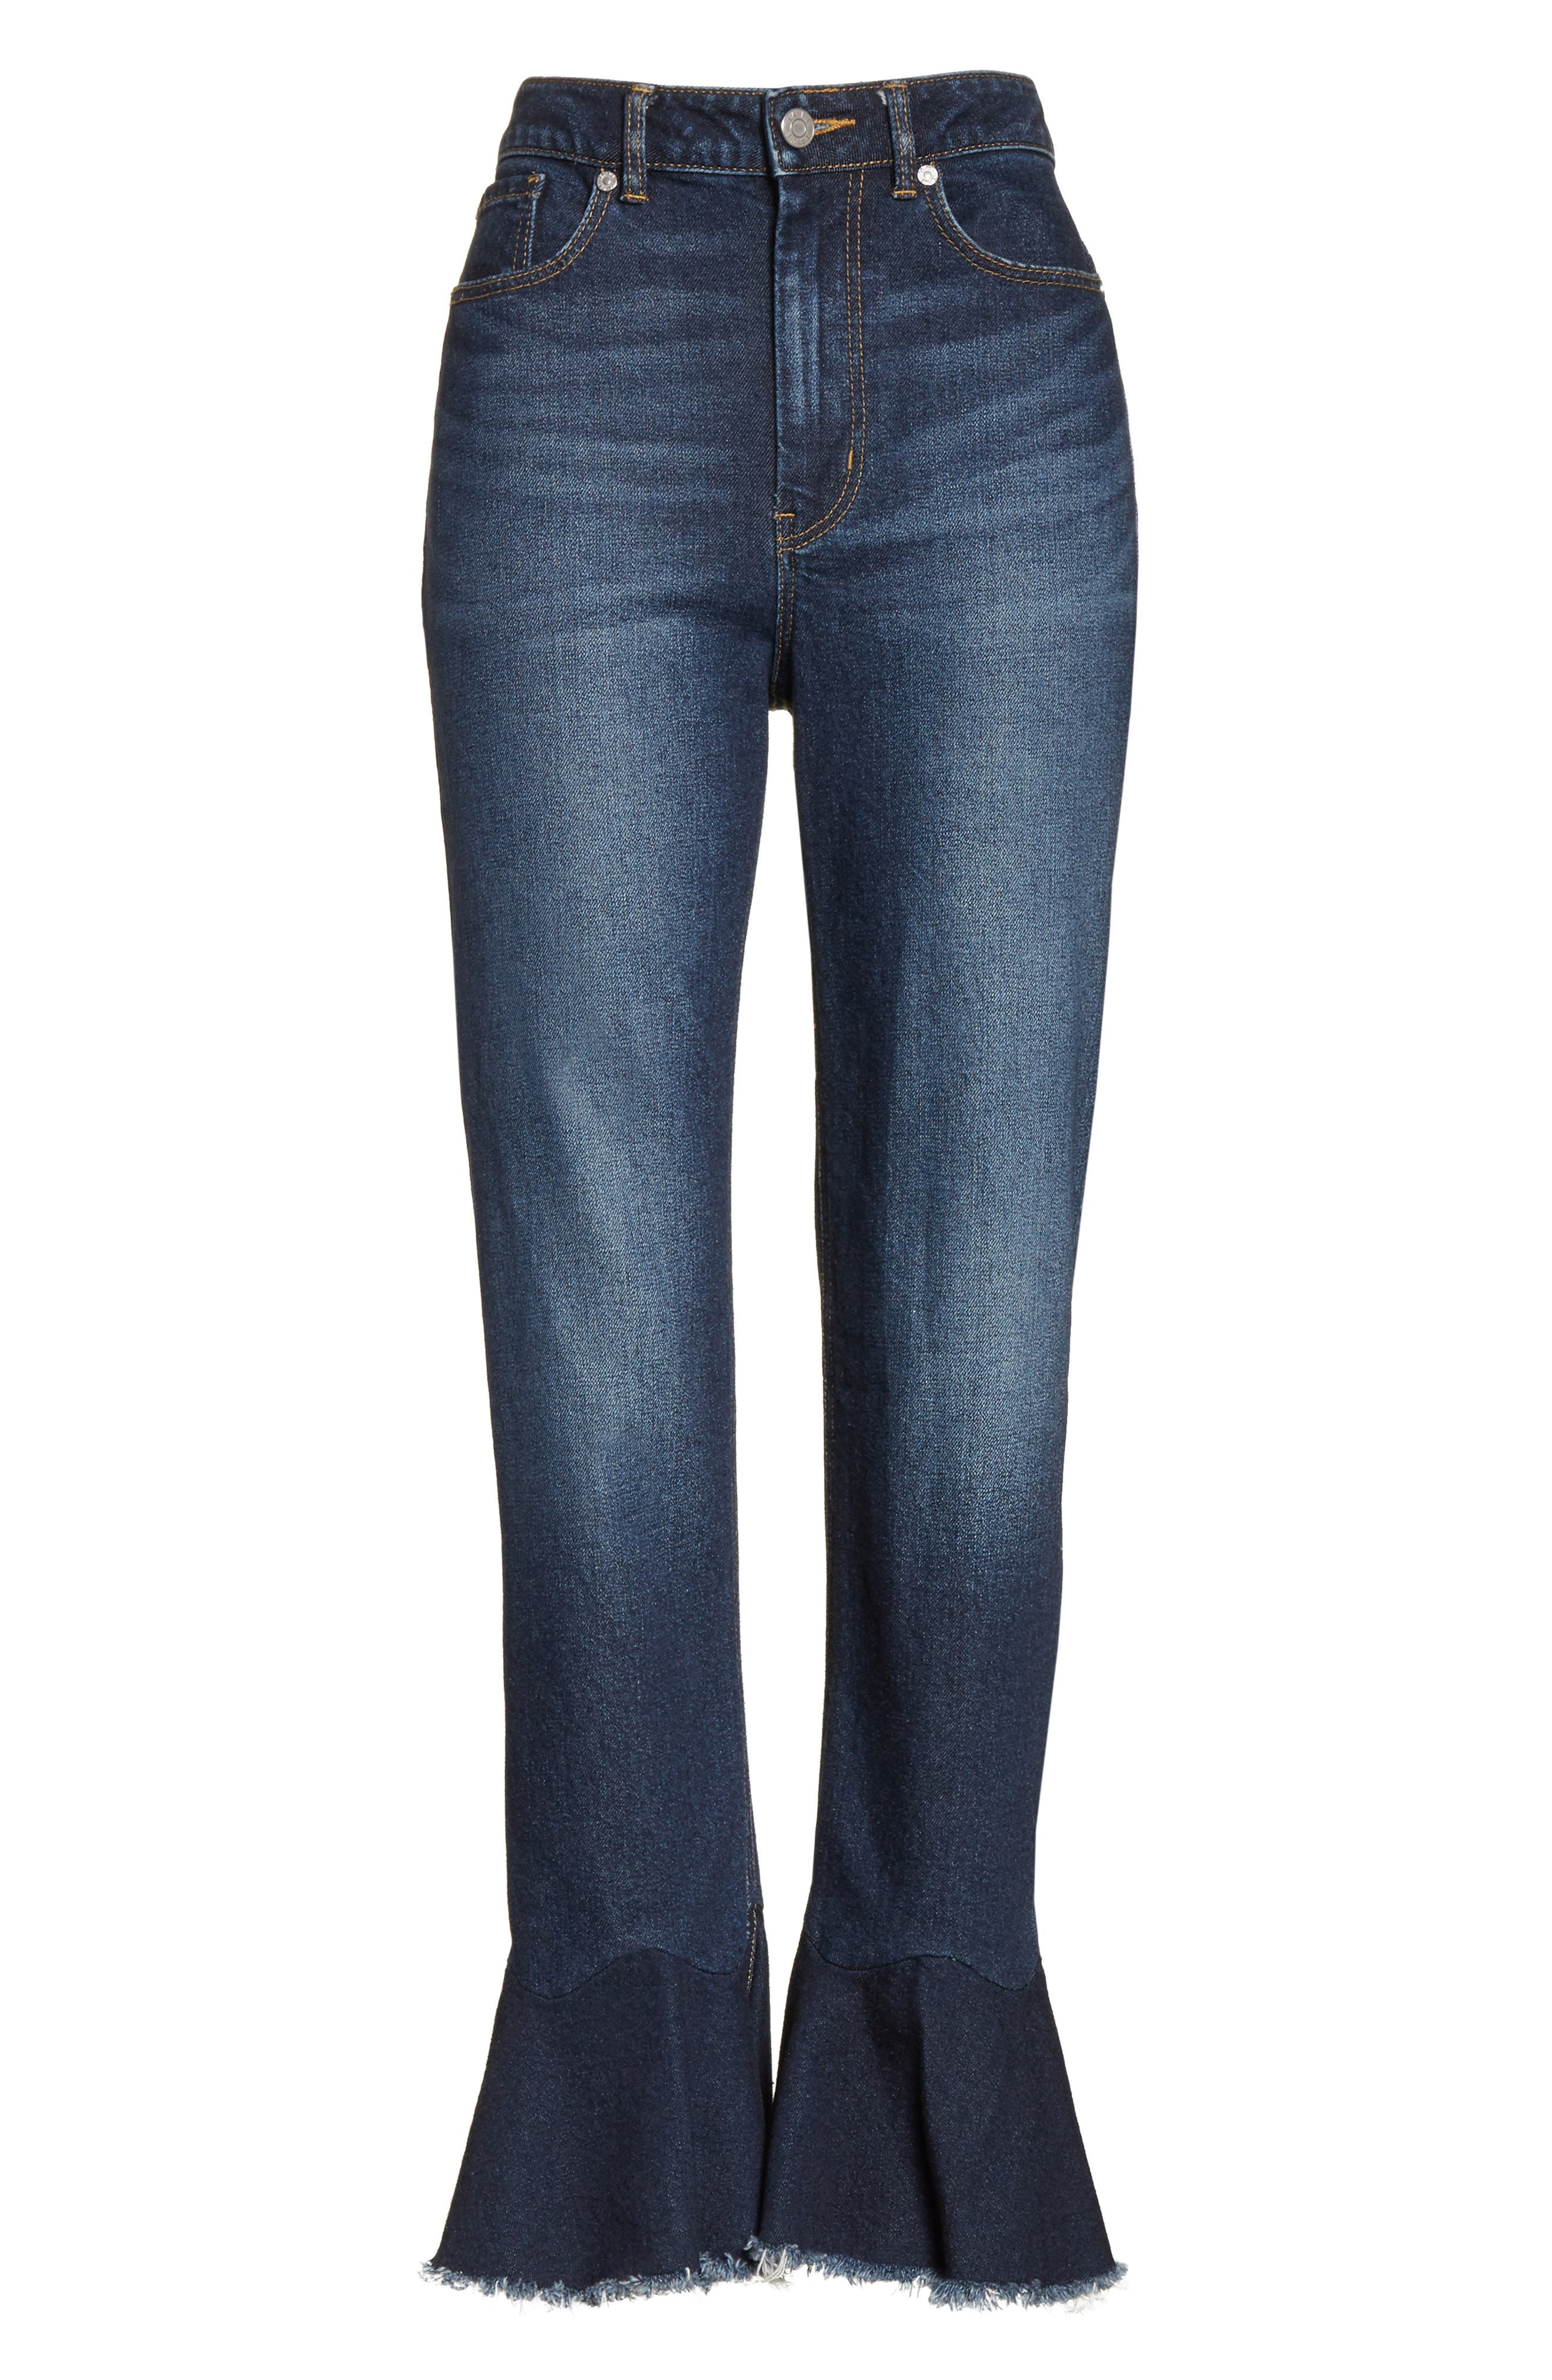 Ruffle Hem Jeans,                             Alternate thumbnail 6, color,                             Blue Midnight Wash